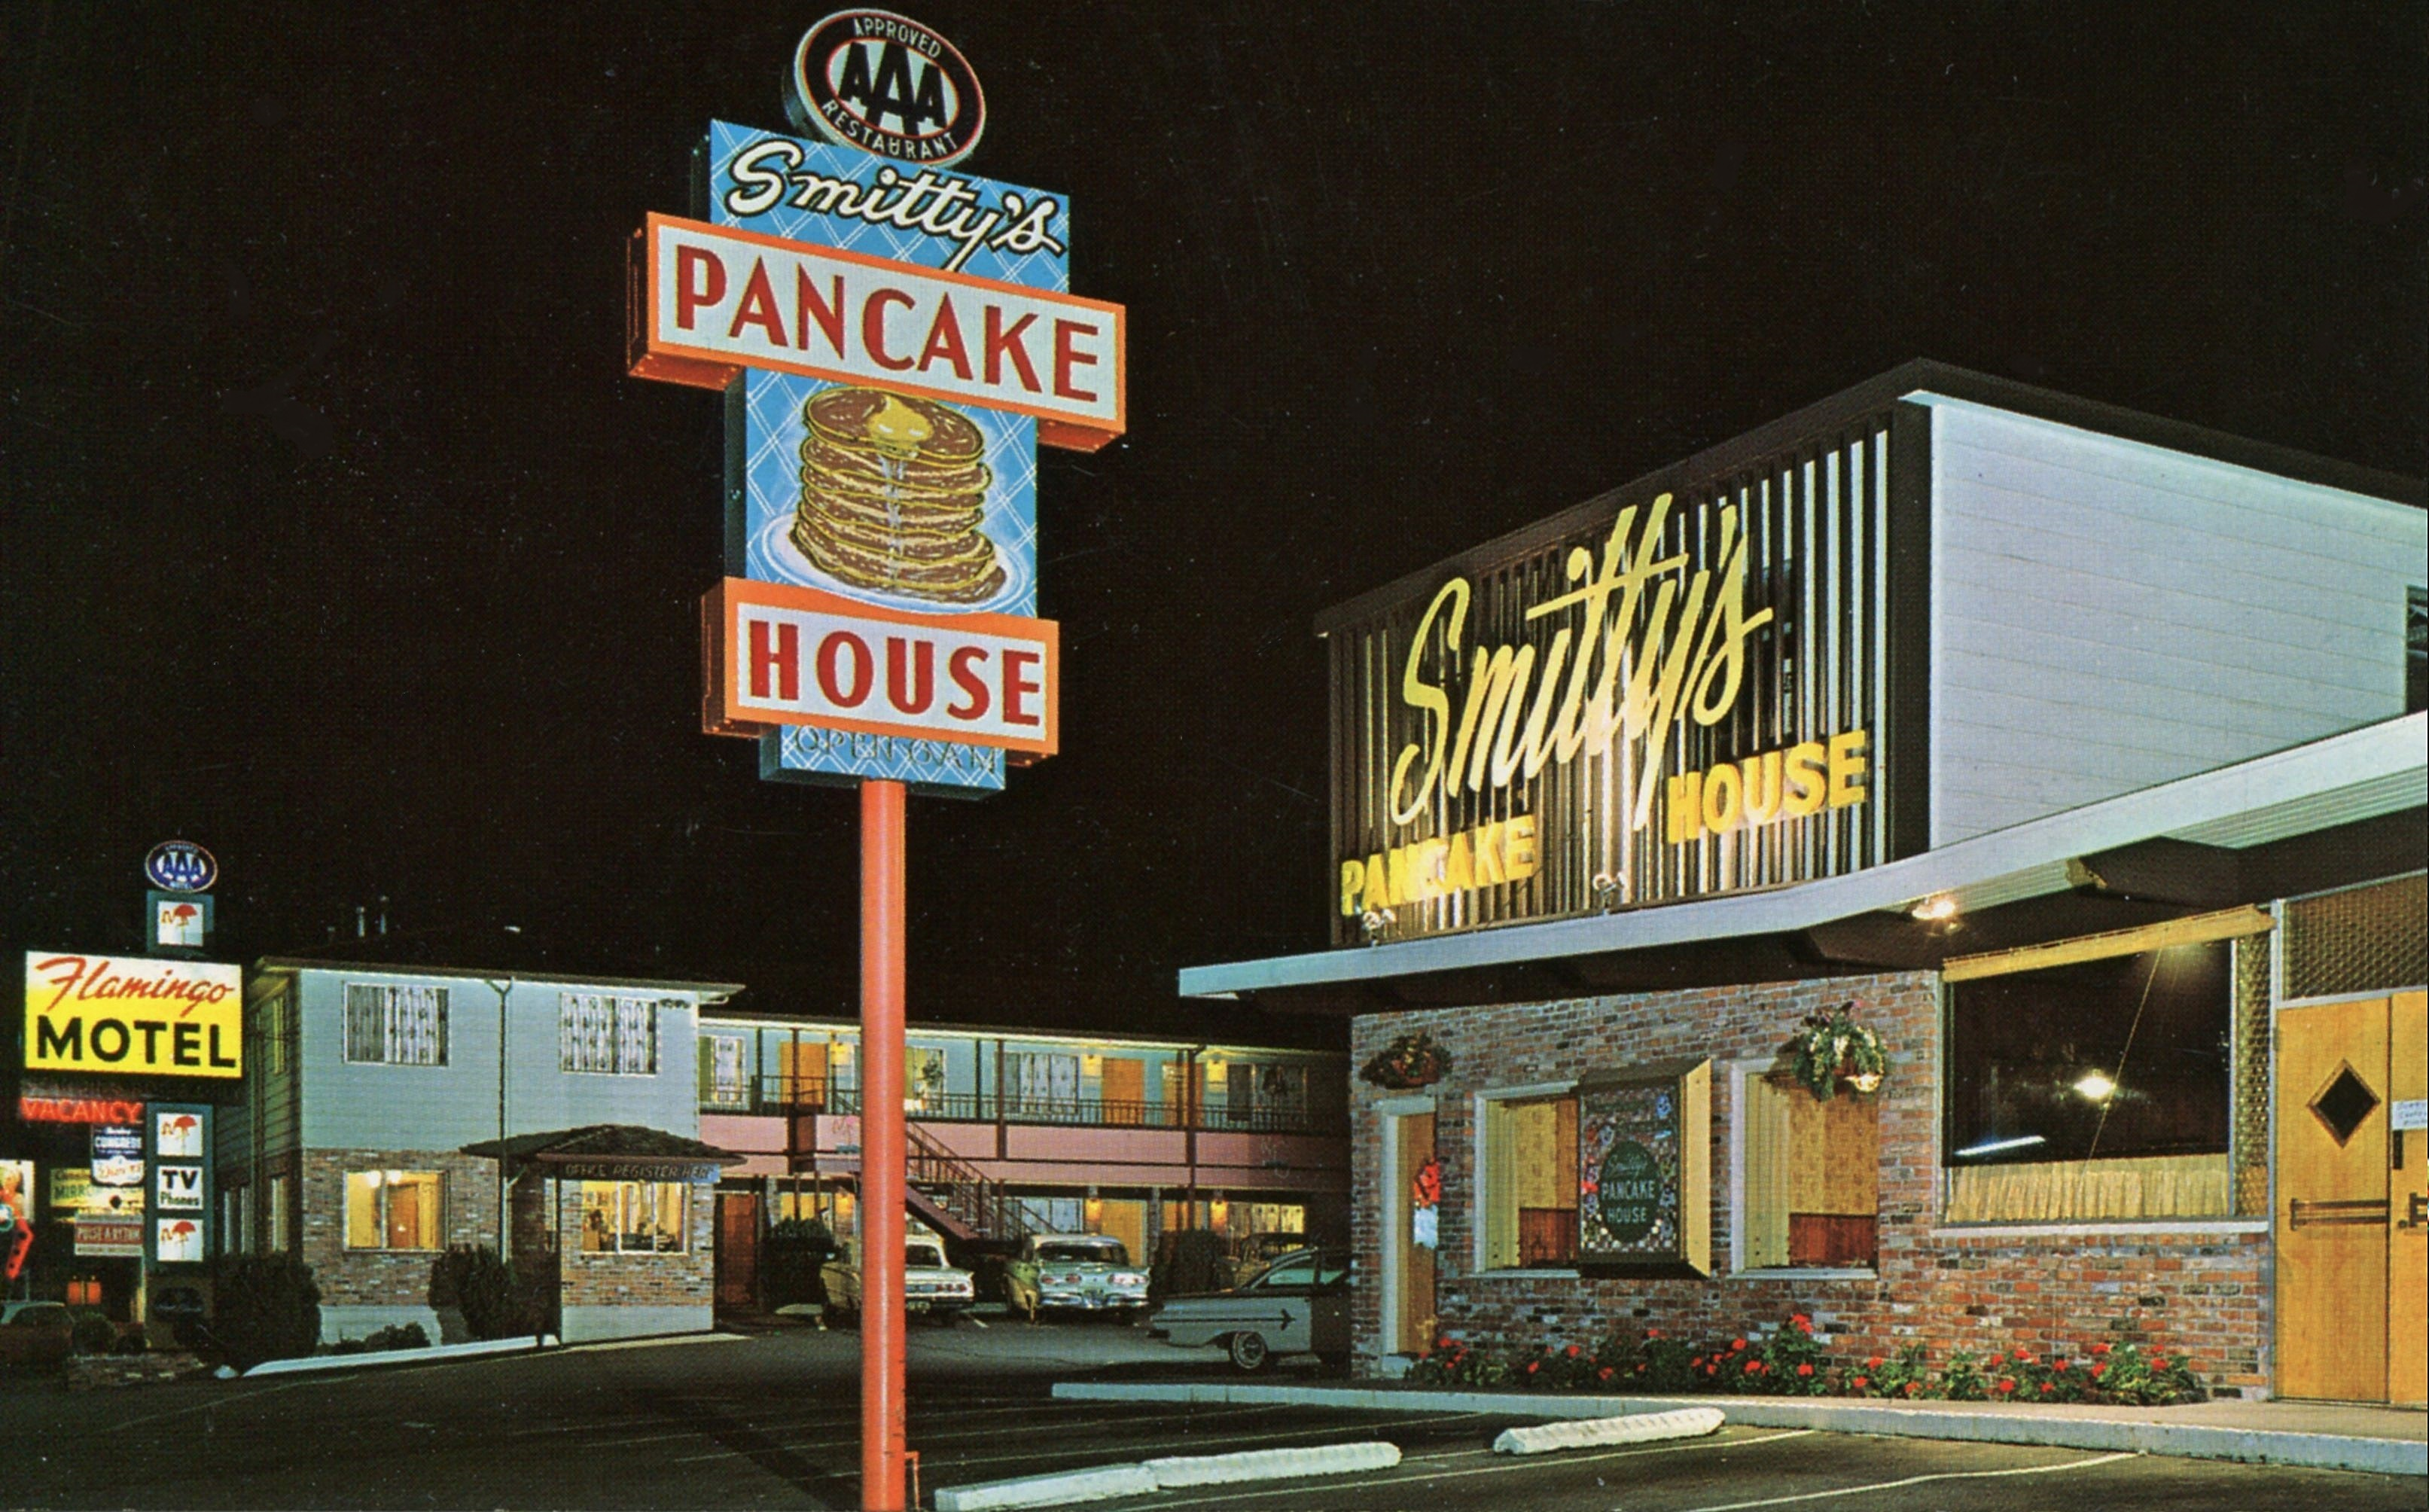 Smitty's Pancake House - Seattle, Washington U.S.A. - 1960s